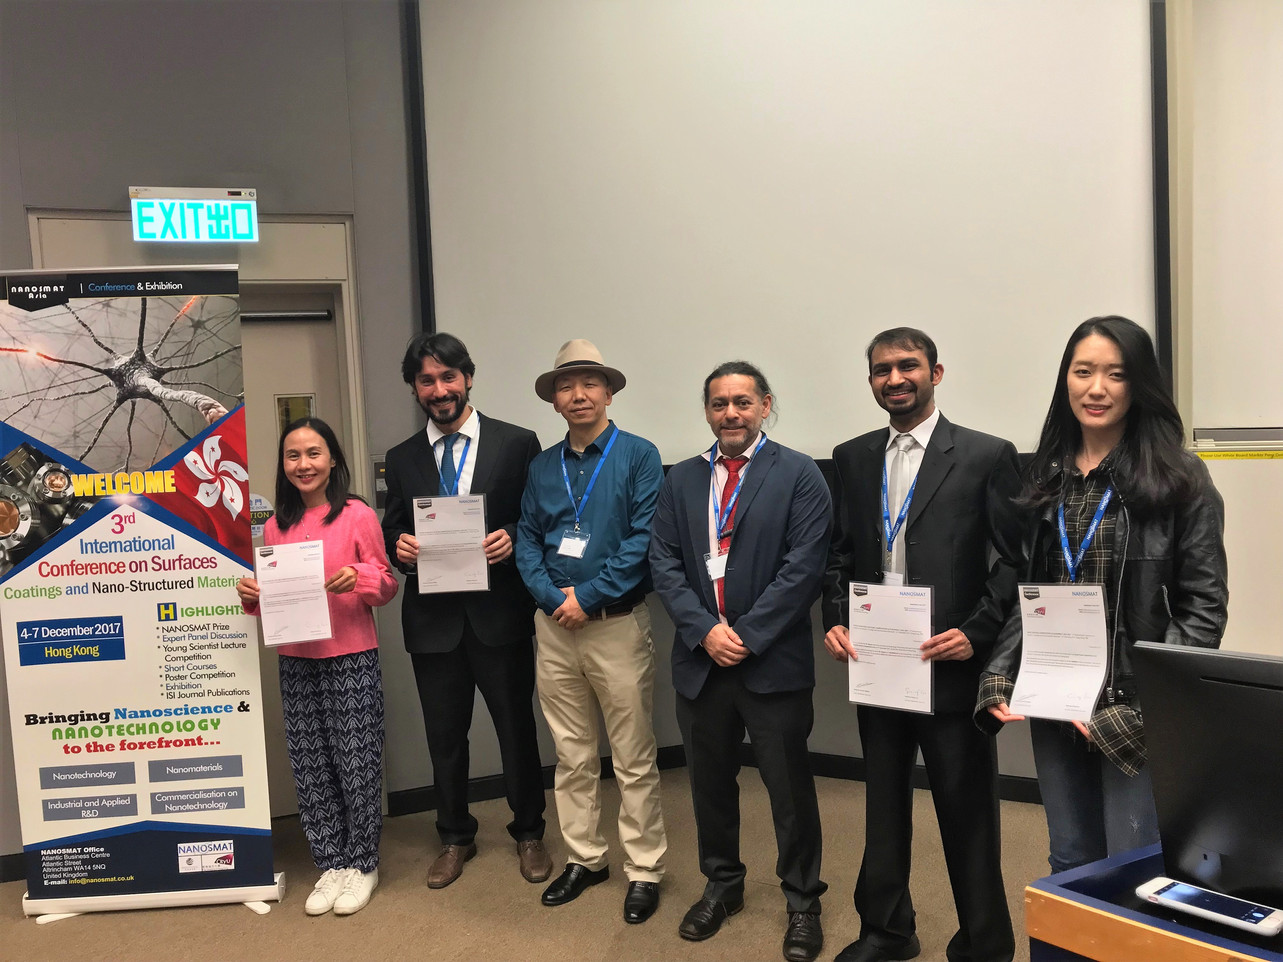 A student joined the International Conference